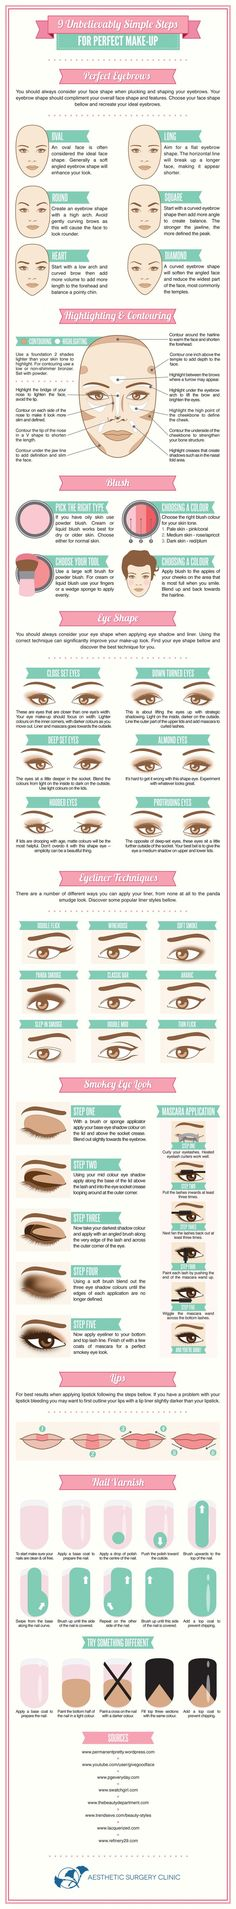 Makeup Tutorials - Here's a complete guide for perfect makeup for beginners.  Excellent reference for pros too! #makeup #beginners #tips